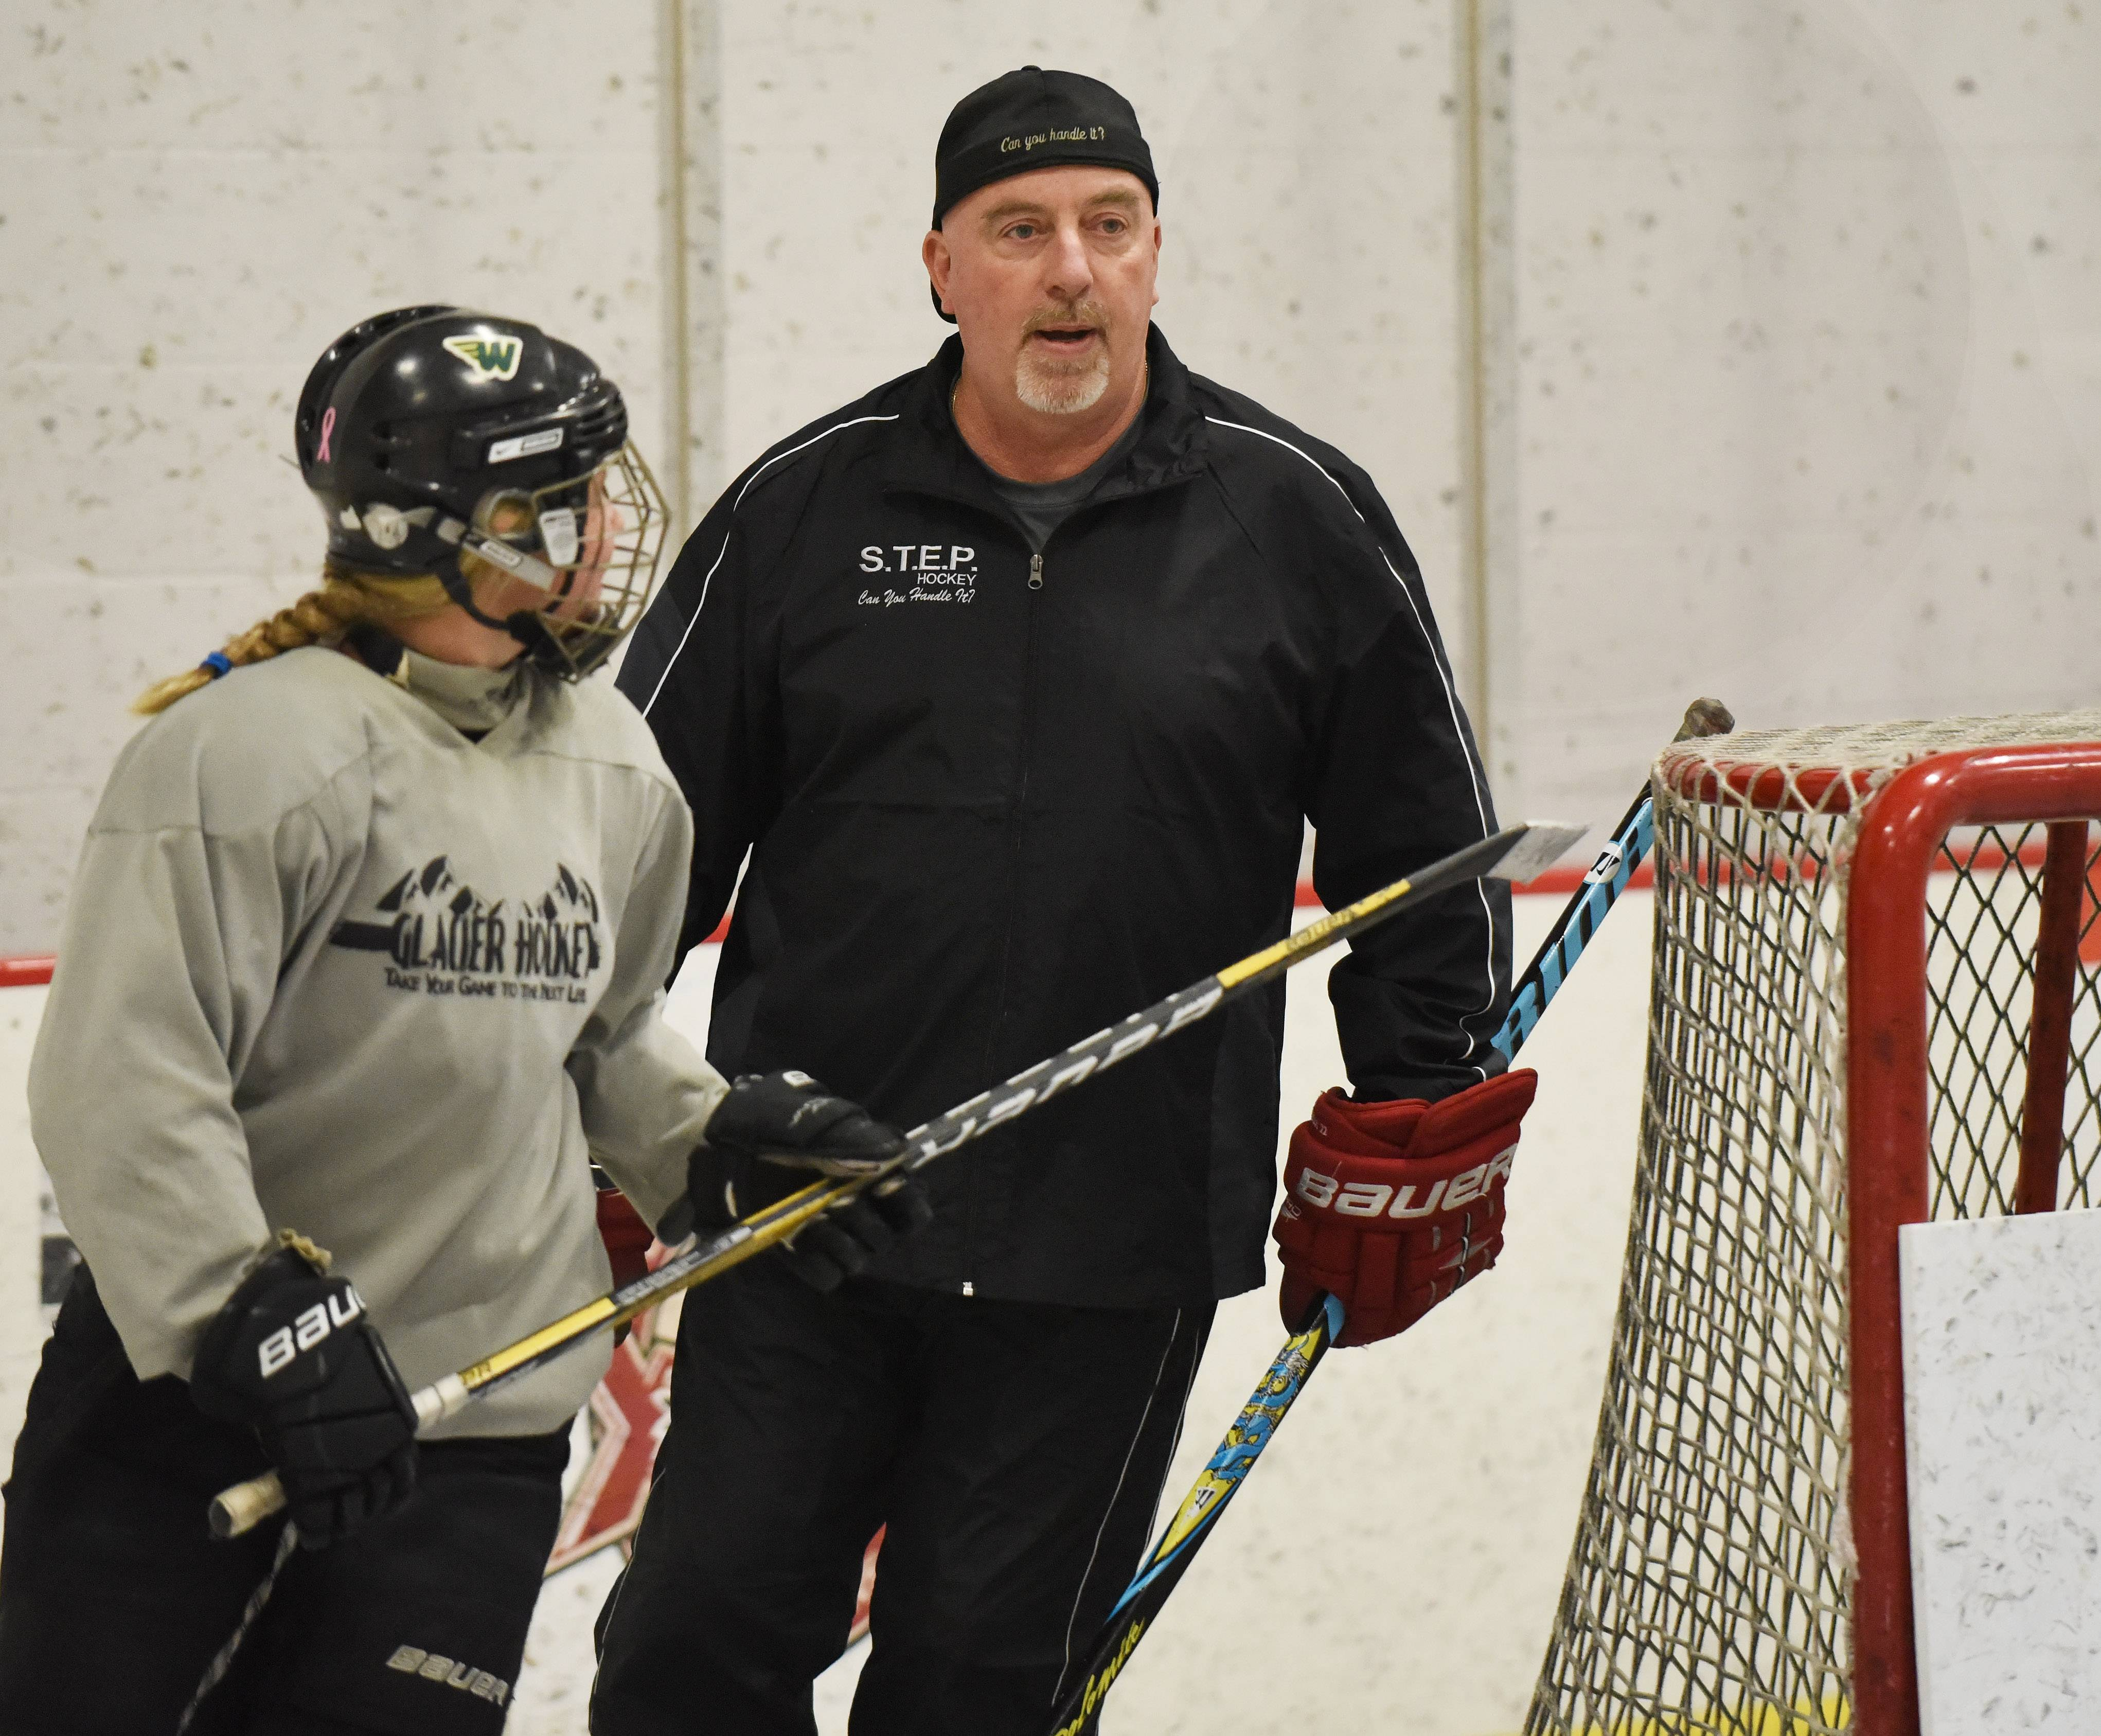 Glenview hockey coach Sylvain Turcotte says so far, more parents than kids are talking about the investigation involving Blackhawks star Patrick Kane.